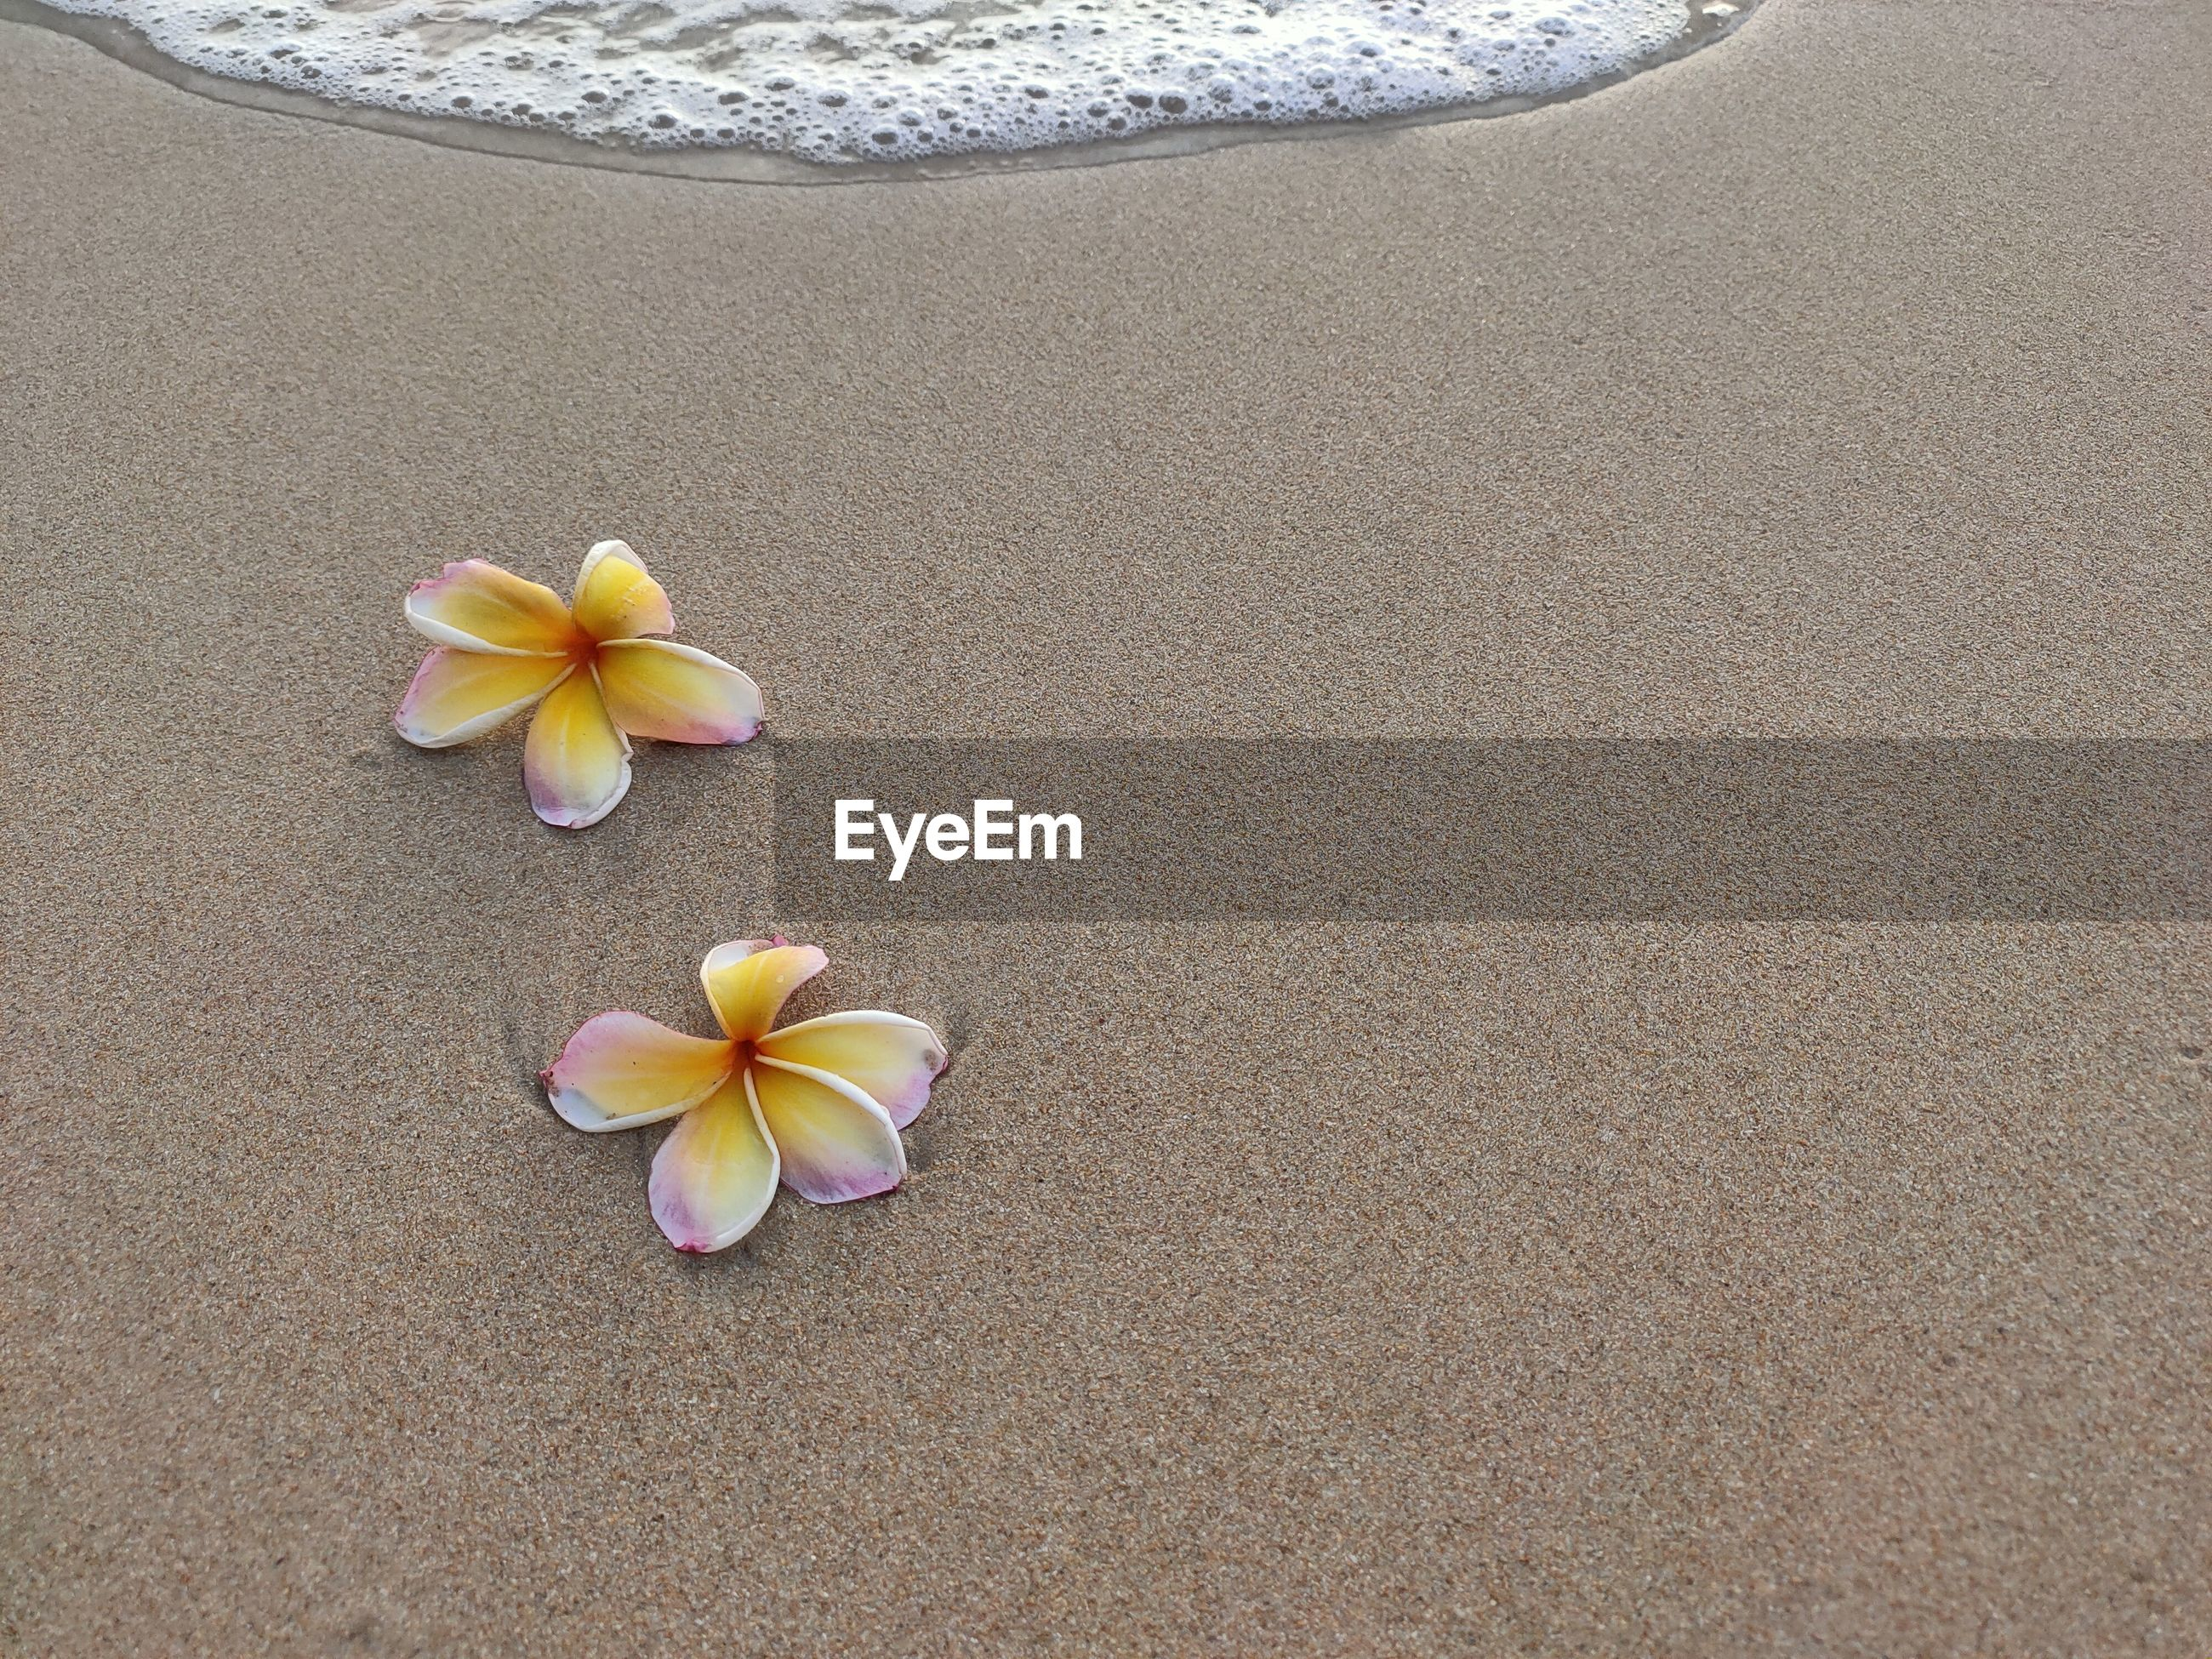 HIGH ANGLE VIEW OF FLOWERING PLANTS ON SAND